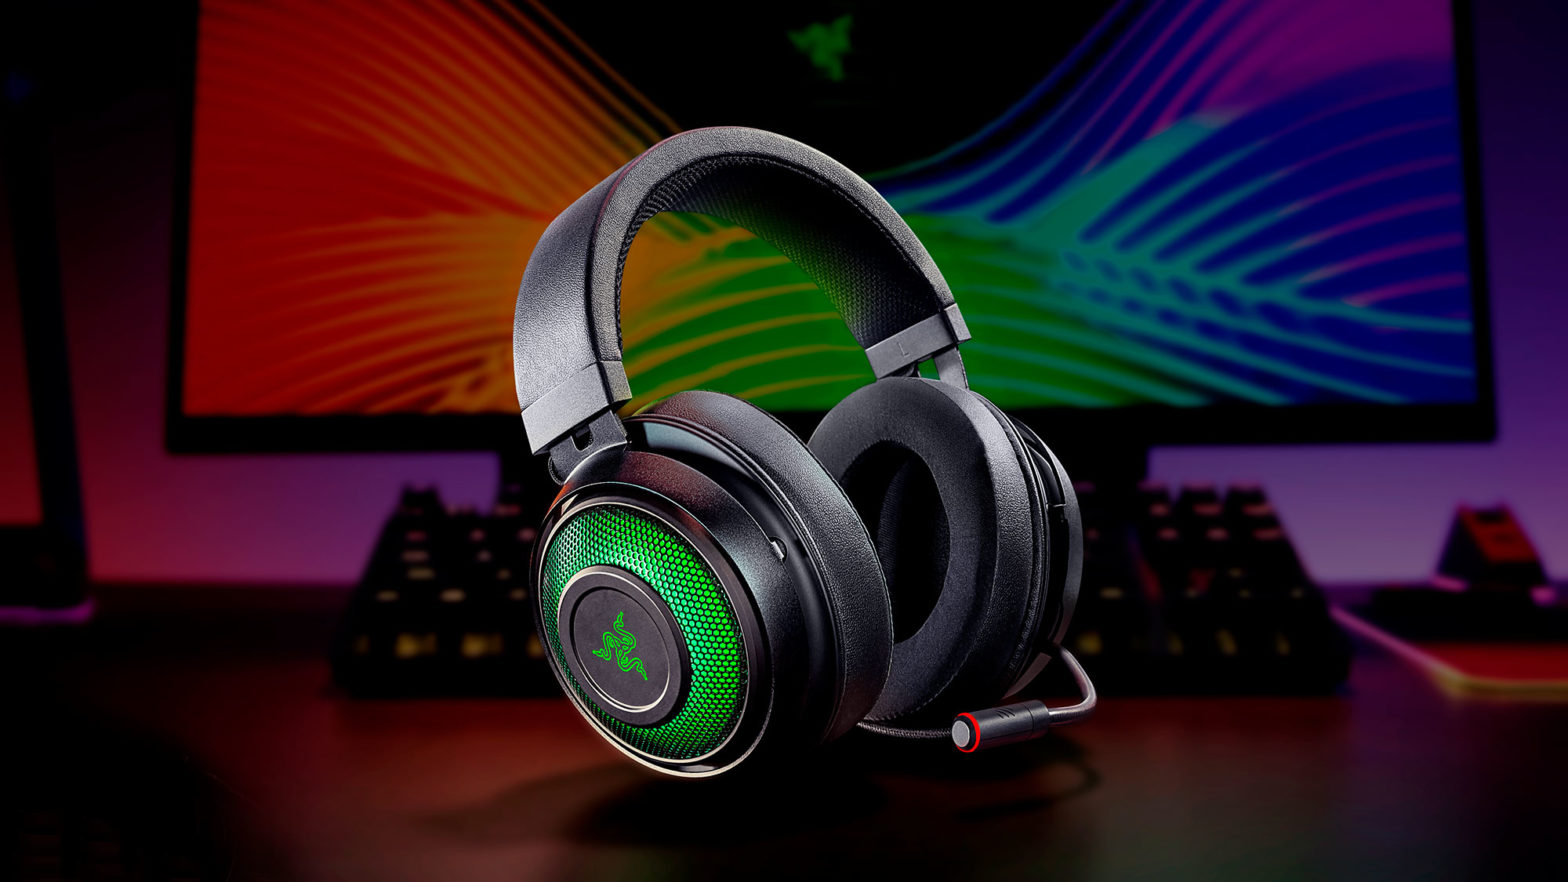 Razer Kraken Ultimate Gaming Headphones